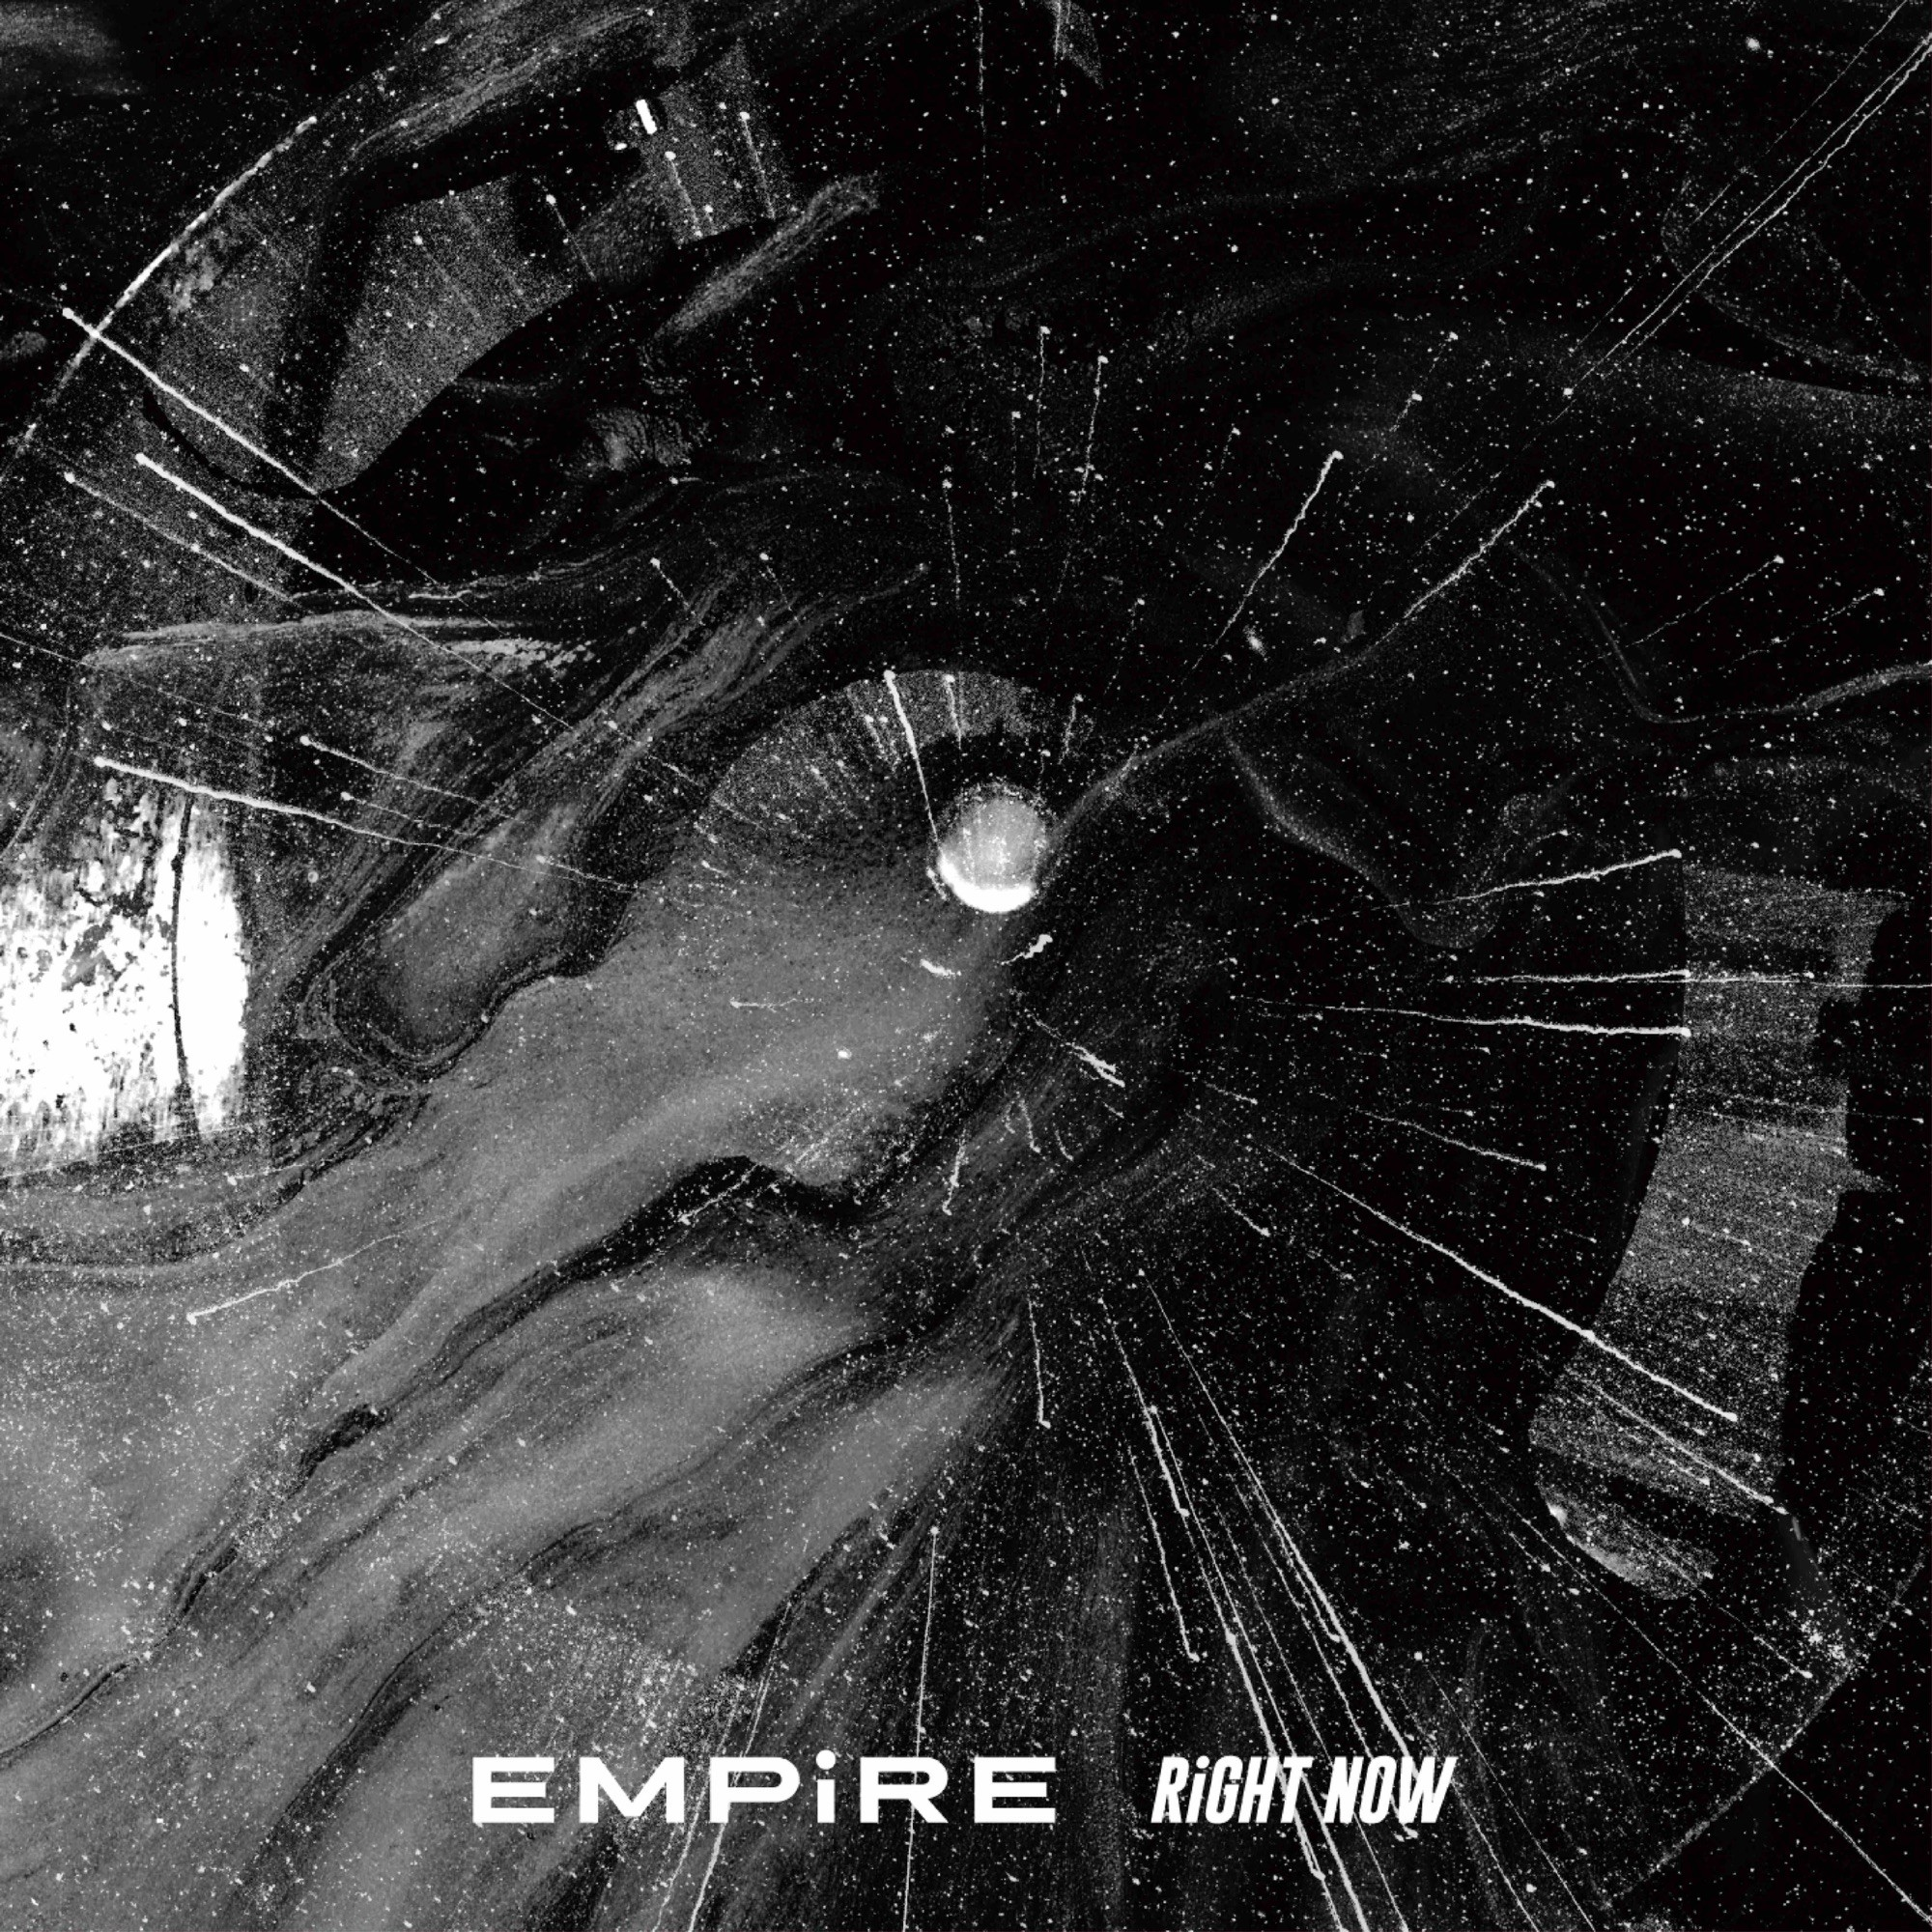 EMPiRE – RiGHT NOW [FLAC 24bit/48kHz]